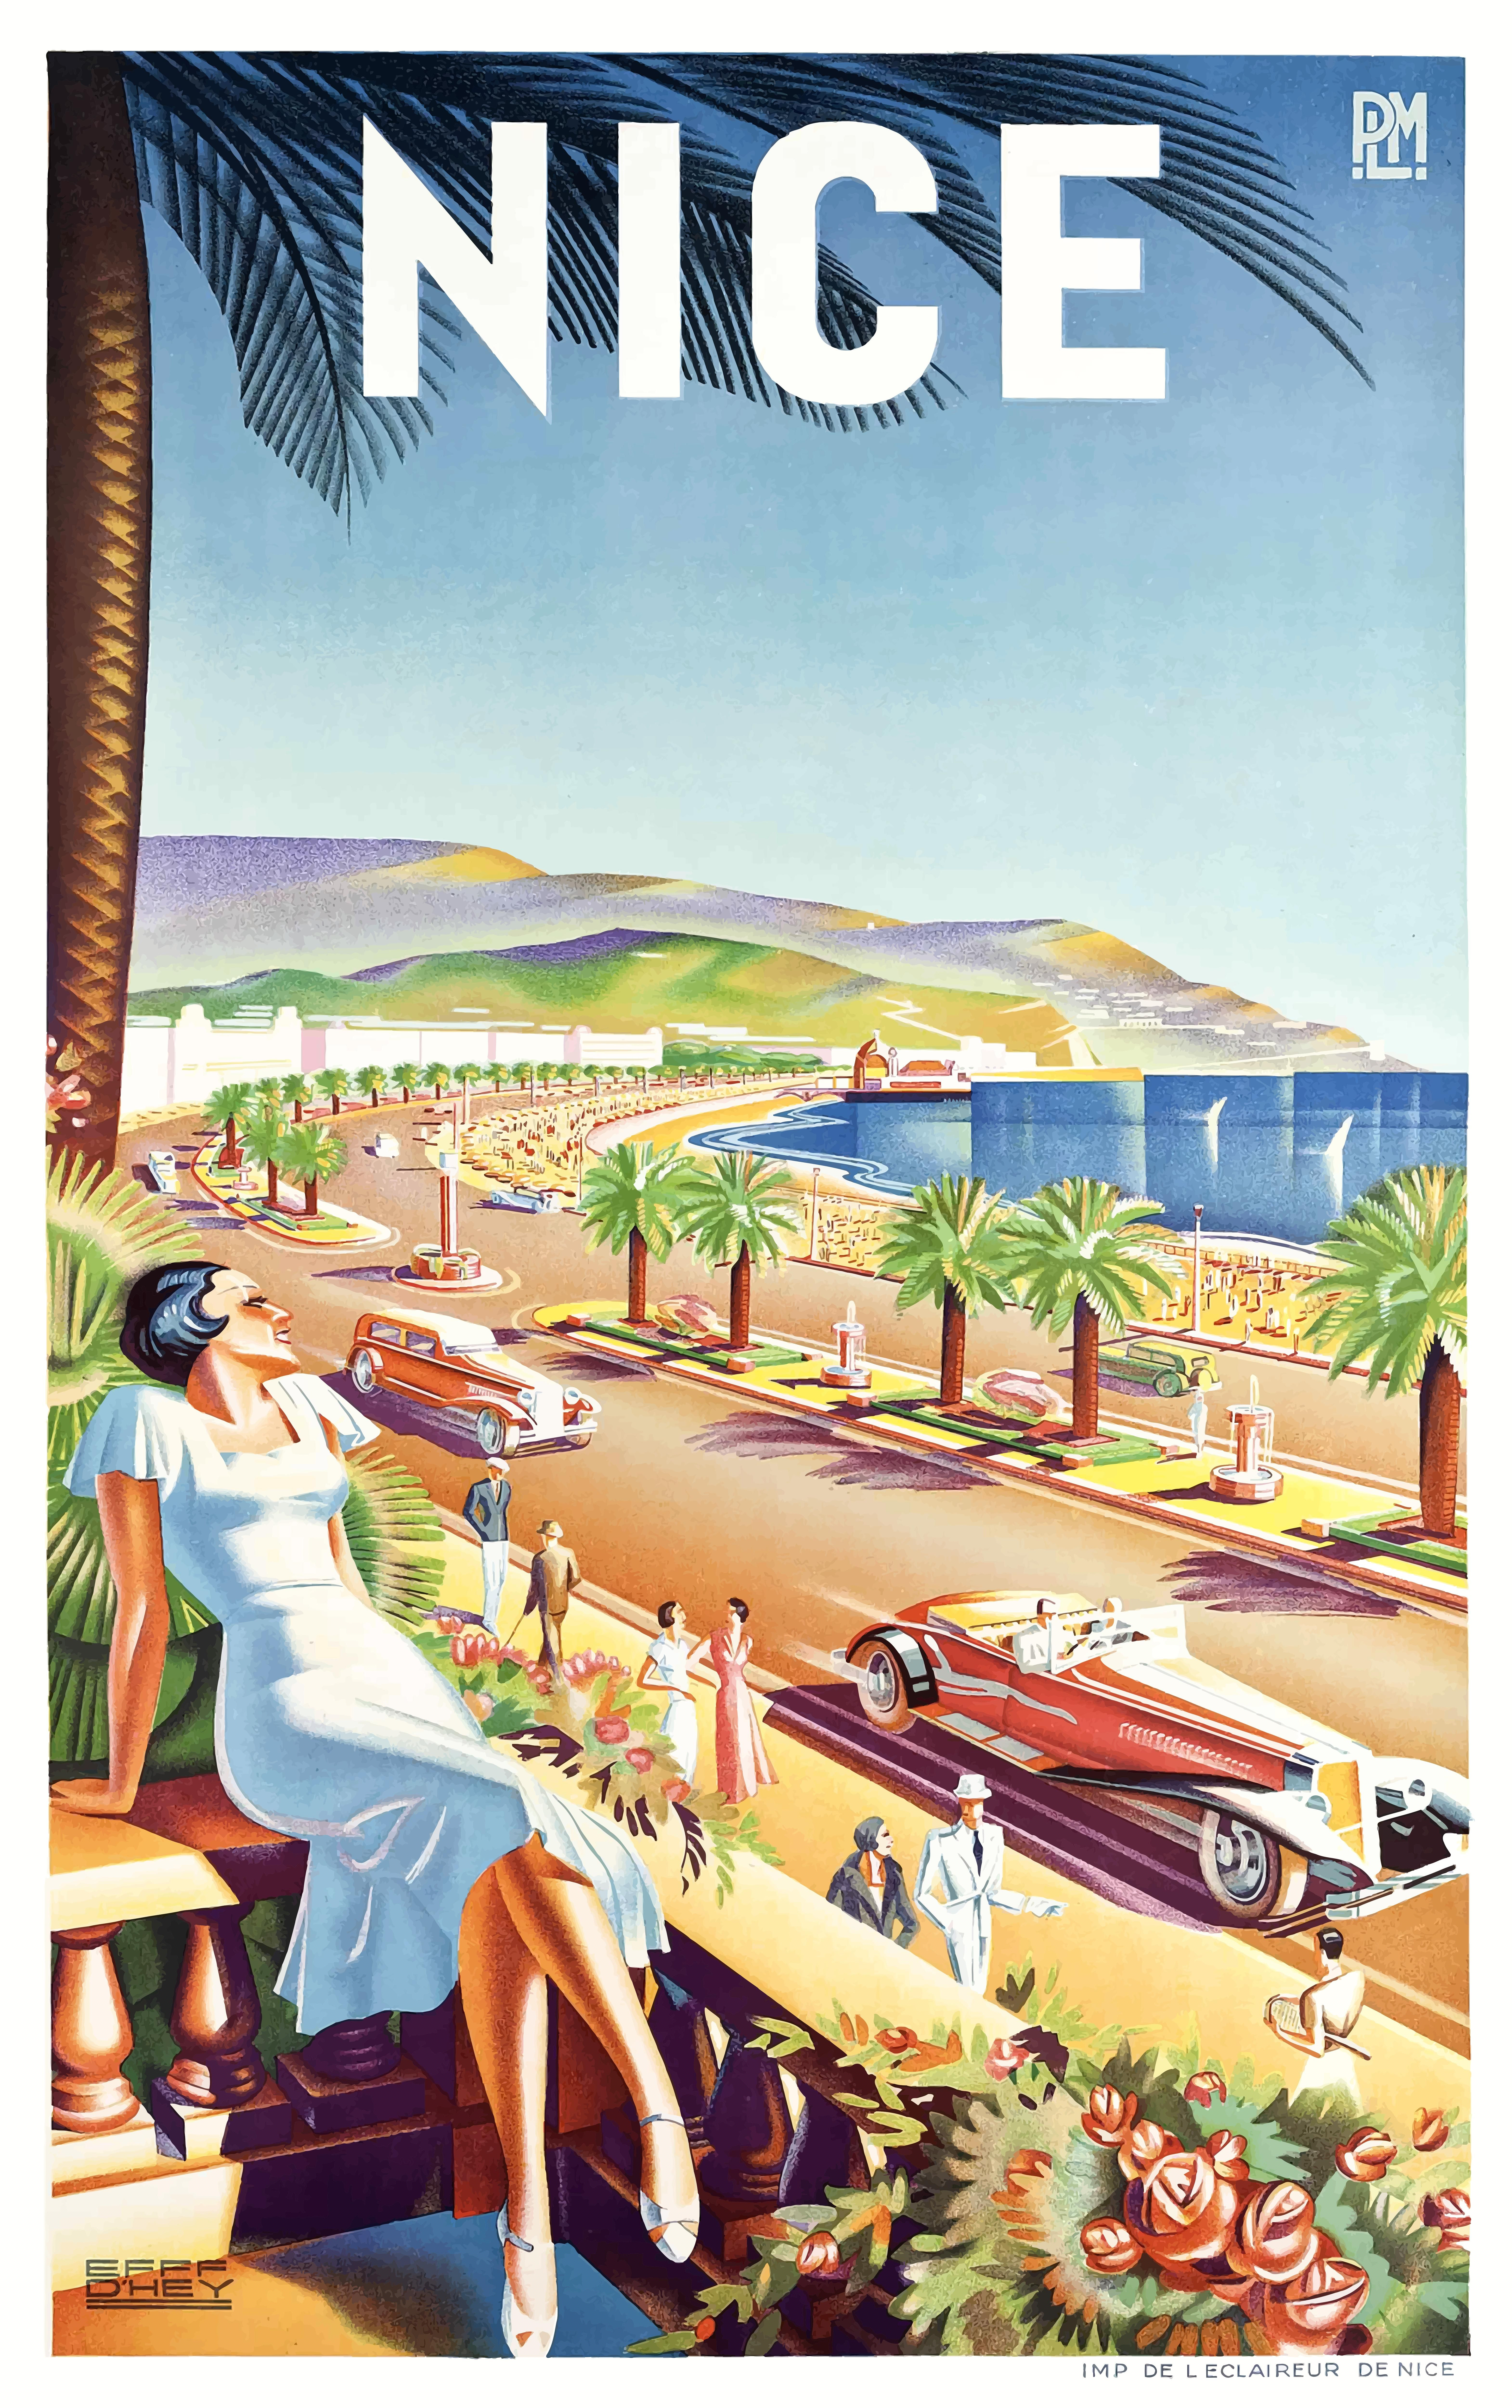 1935 Nice France Travel Poster By Retro Graphics In 2020 Retro Travel Poster Travel Posters Art Deco Travel Posters